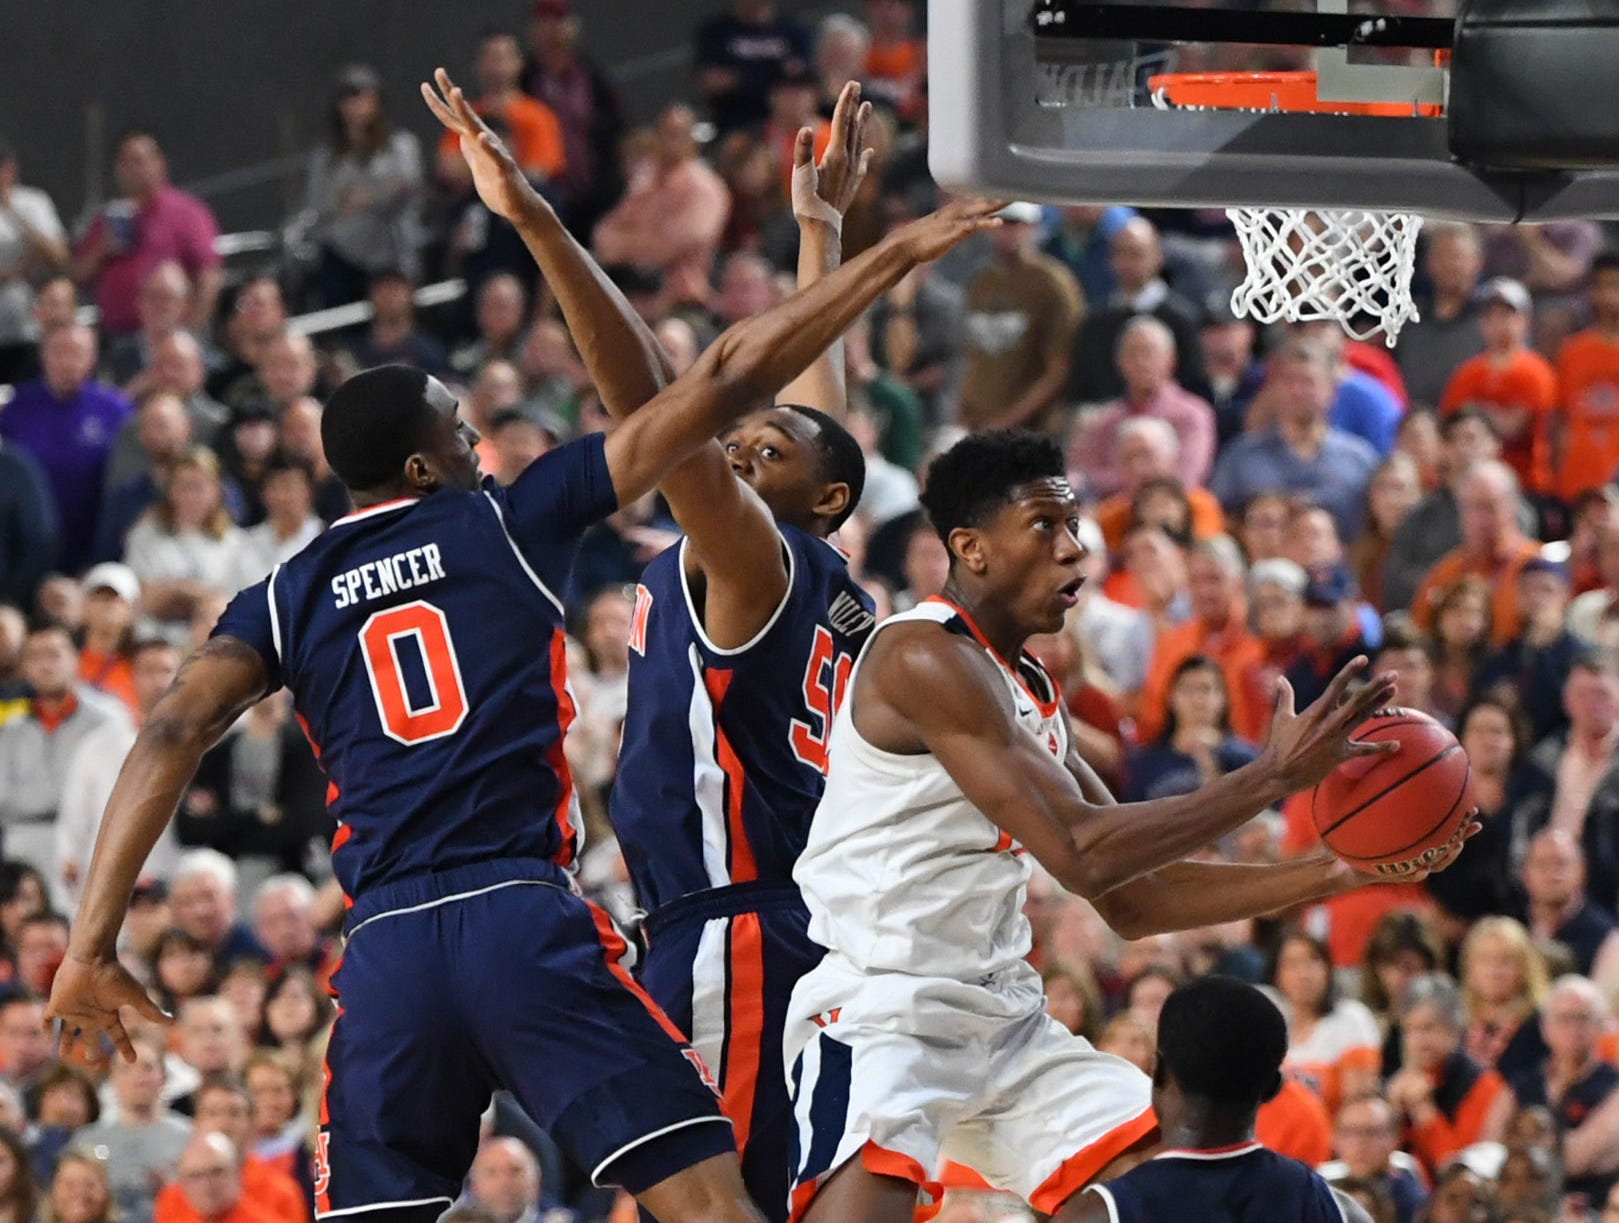 Auburn Tigers guard J'Von McCormick (12) shoots between Auburn Tigers forward Horace Spencer (0) and center Austin Wiley (50).